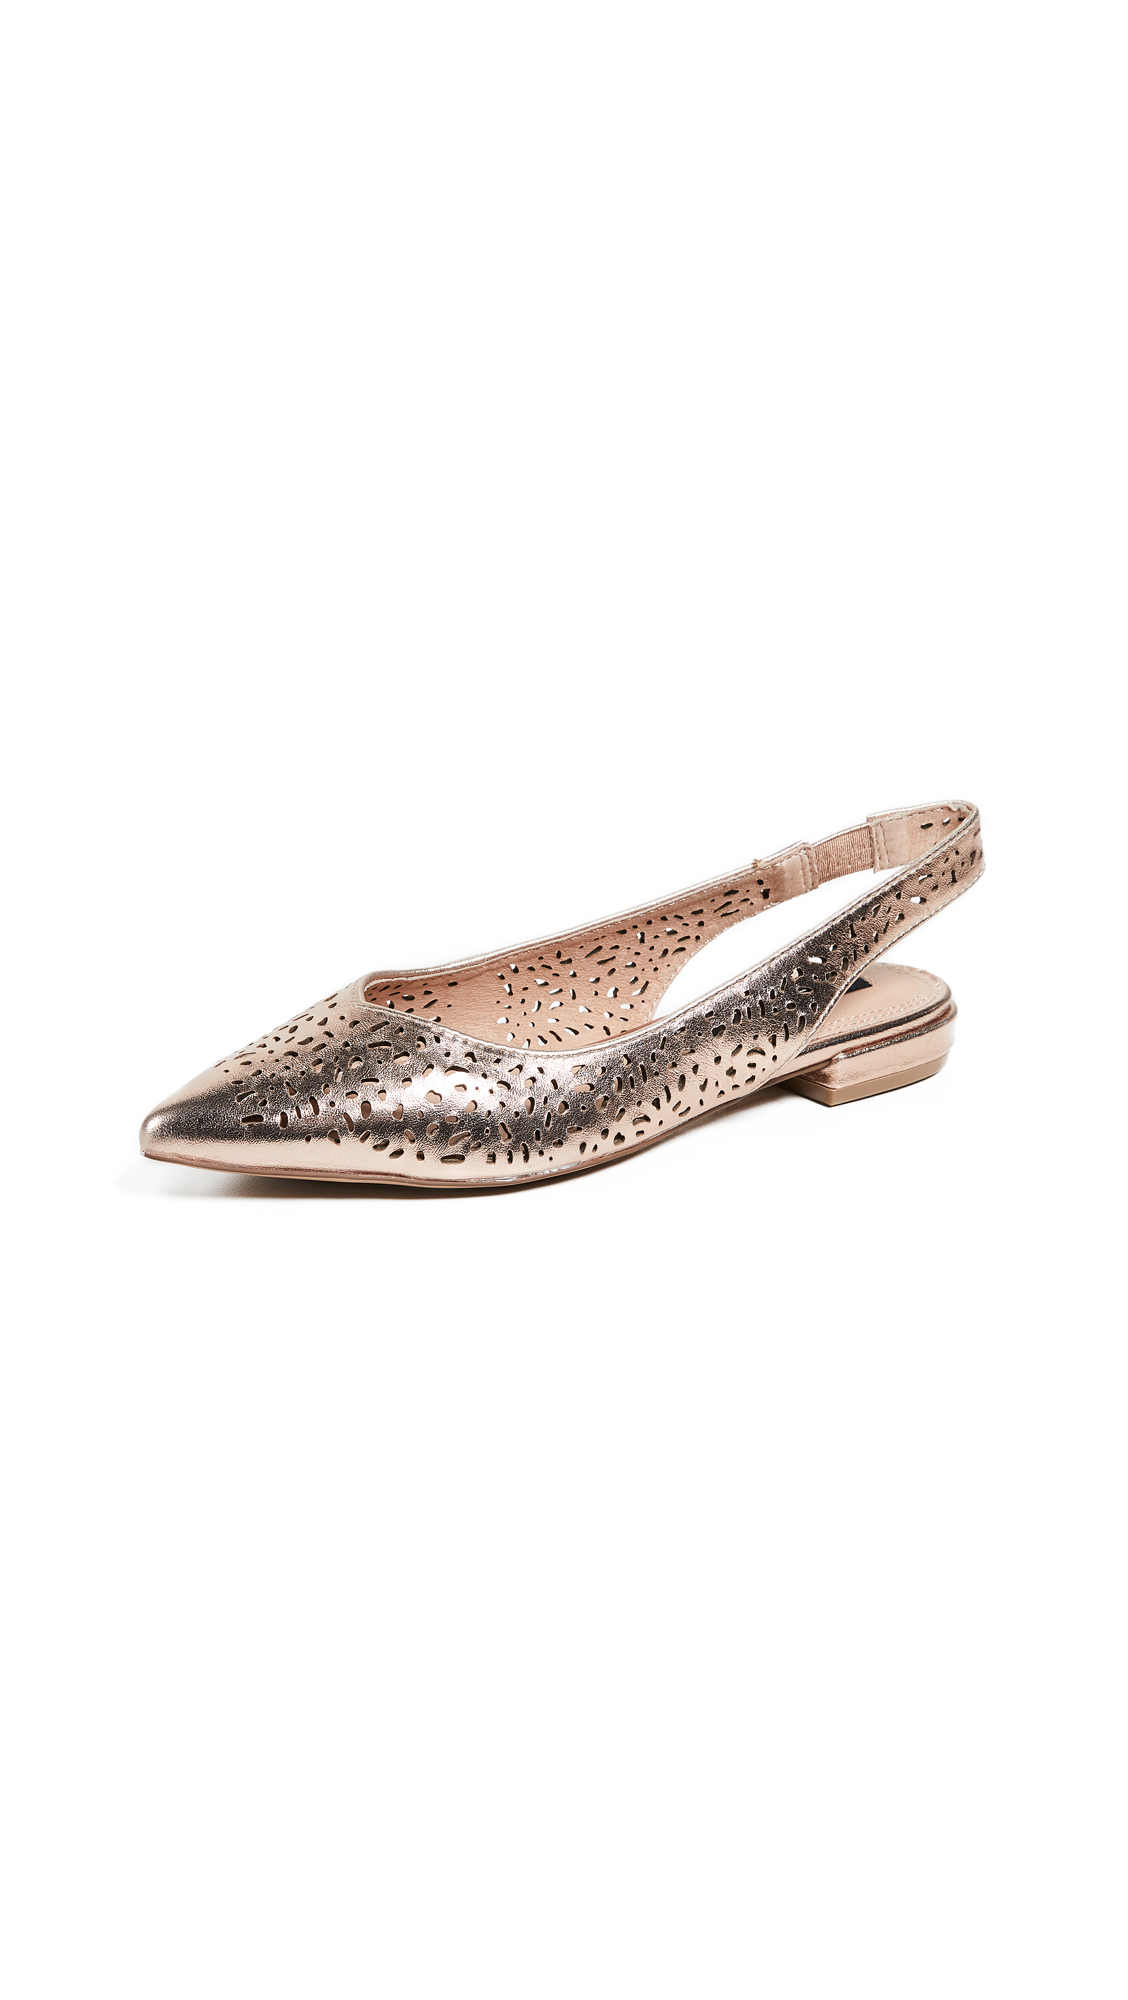 STEVEN LOURDES POINT TOE SLINGBACK FLATS